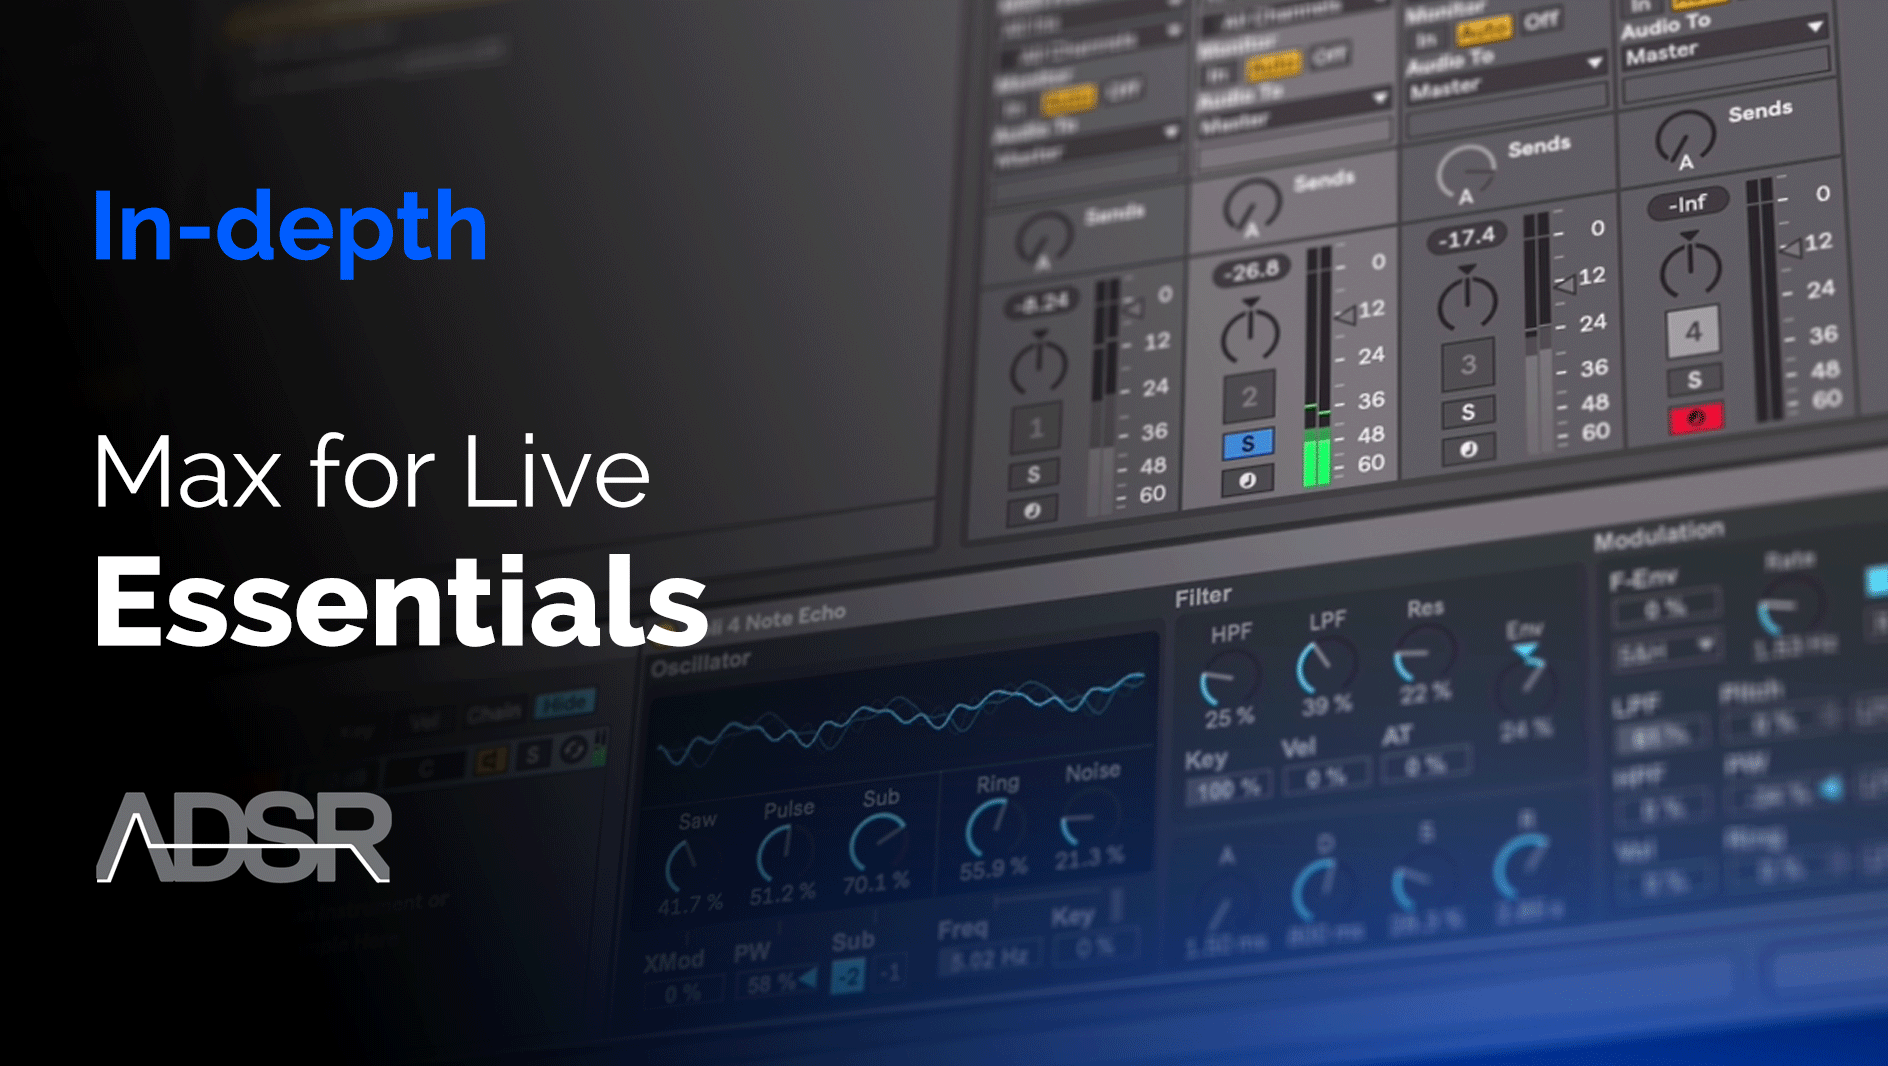 Max for Live Essentials - Control Devices